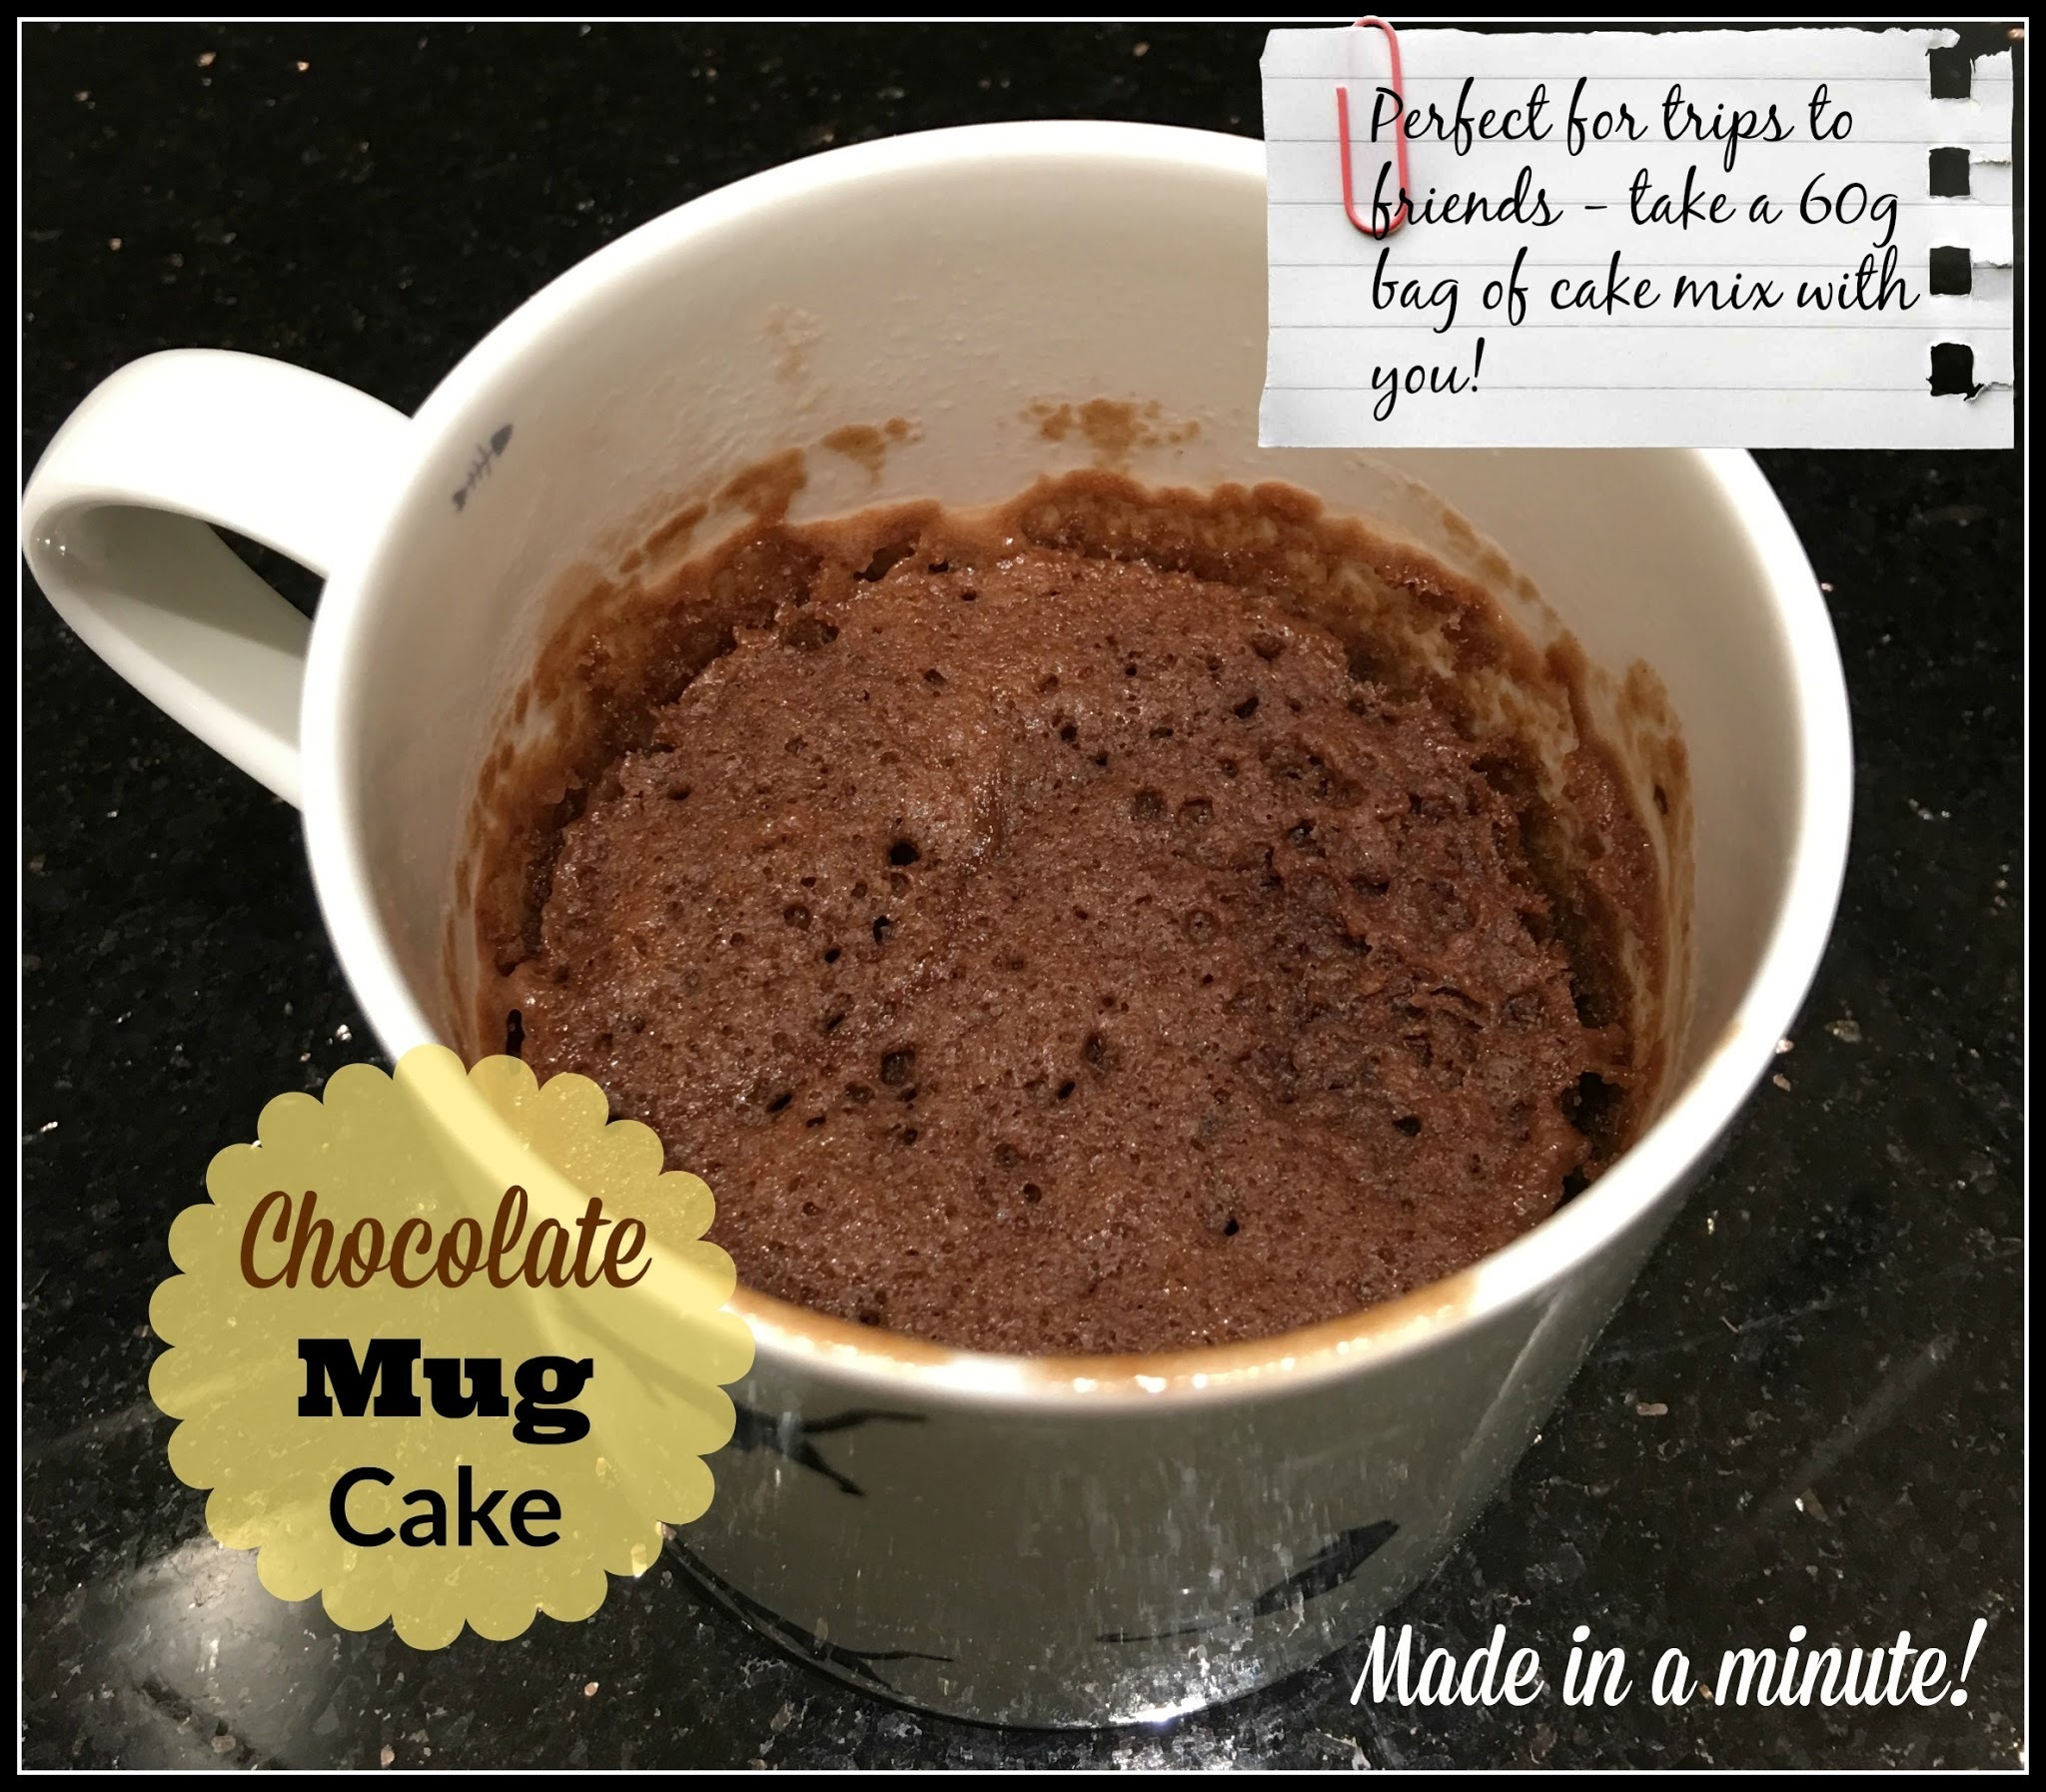 Chocolate Mug Cake - gluten, dairy, soya, nut and egg free!